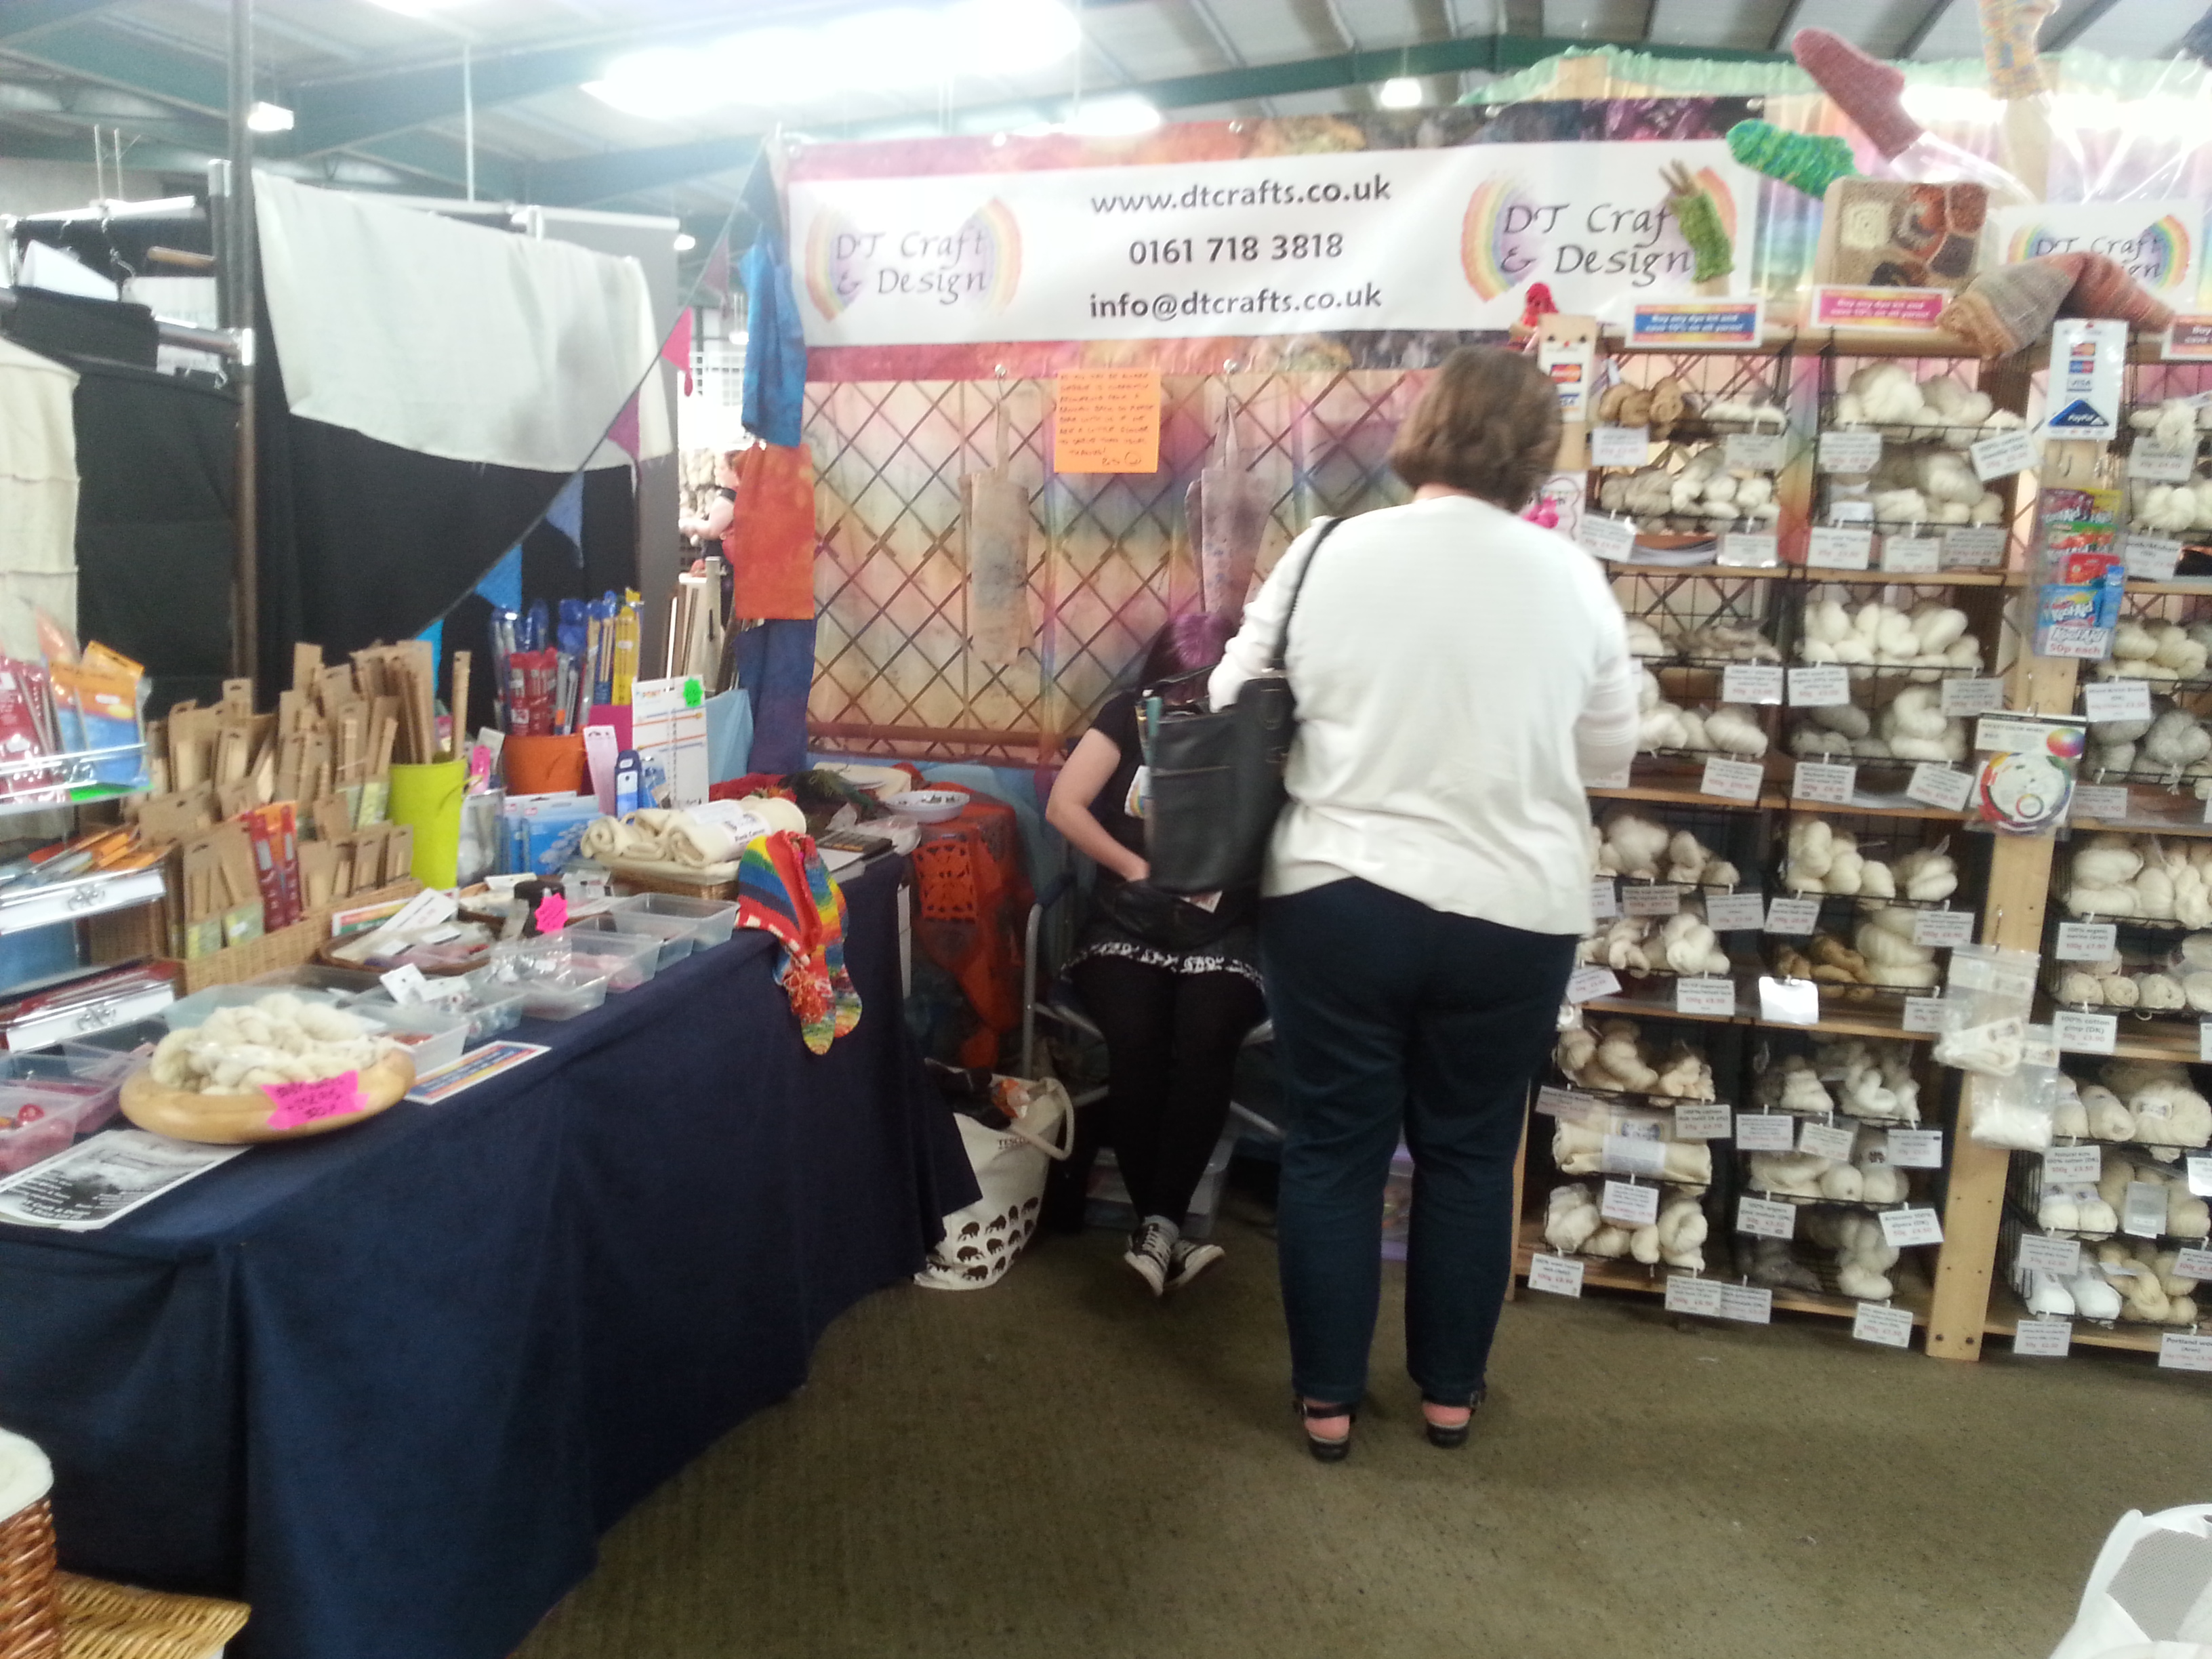 DT Craft and Design's will be at Woolfest 2018. We'll be on stall c63-64, and Woolfest takes place on 22nd-23rd June 2018